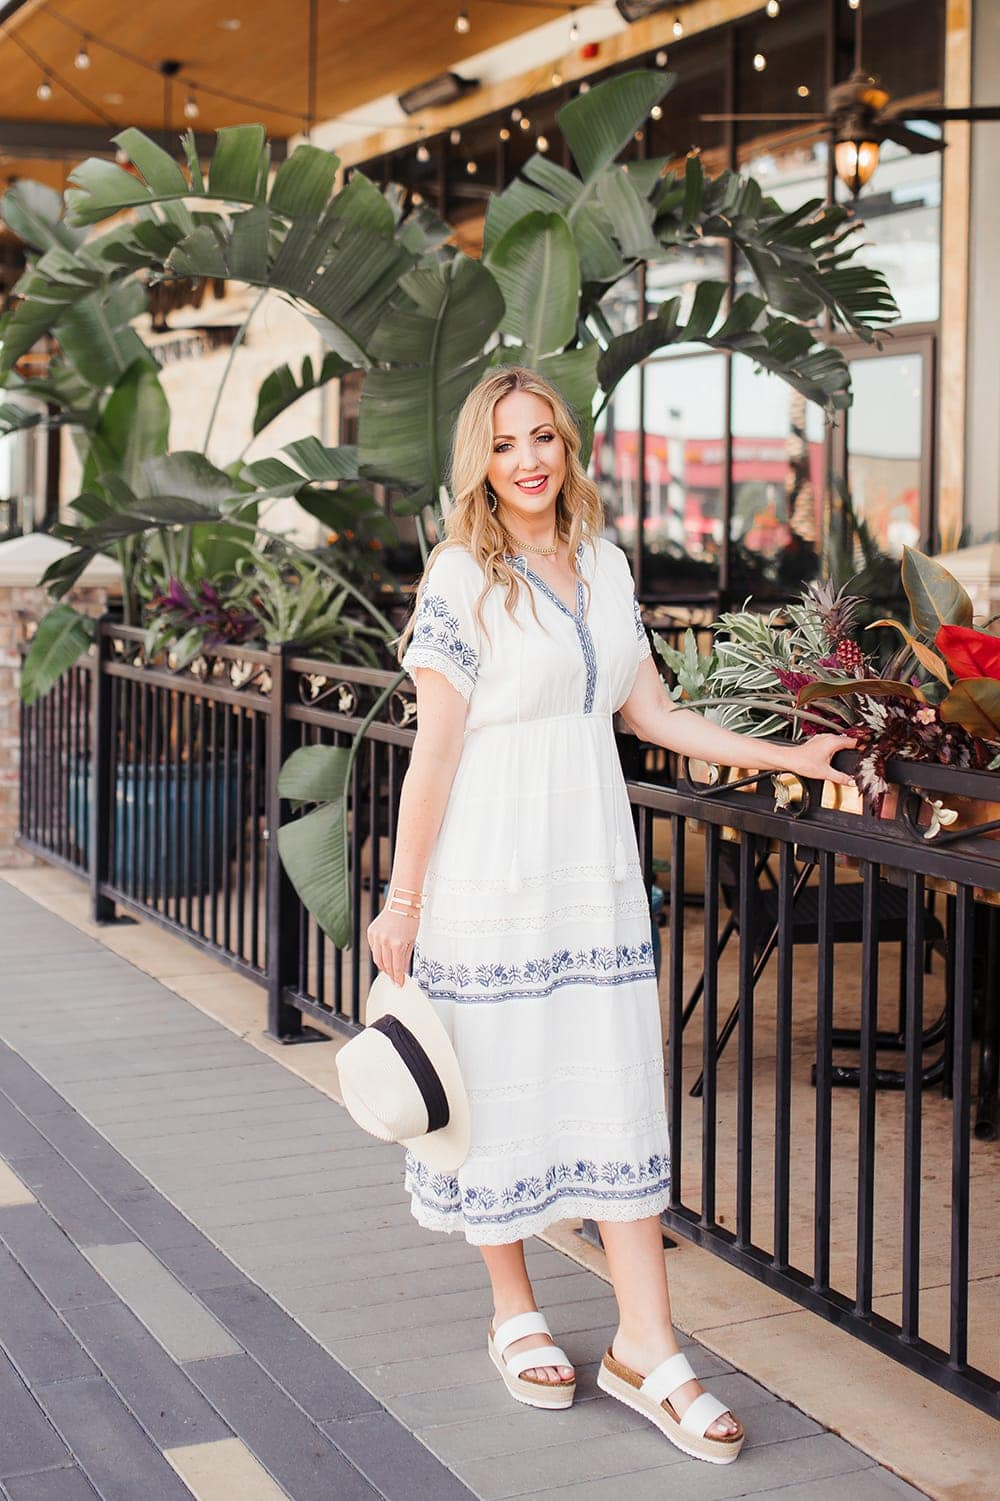 Houston lifestyle blogger Meg O. on the Go shares 3 perfect outfits for summer - this embroidered dress from Evereve is perfect for summer